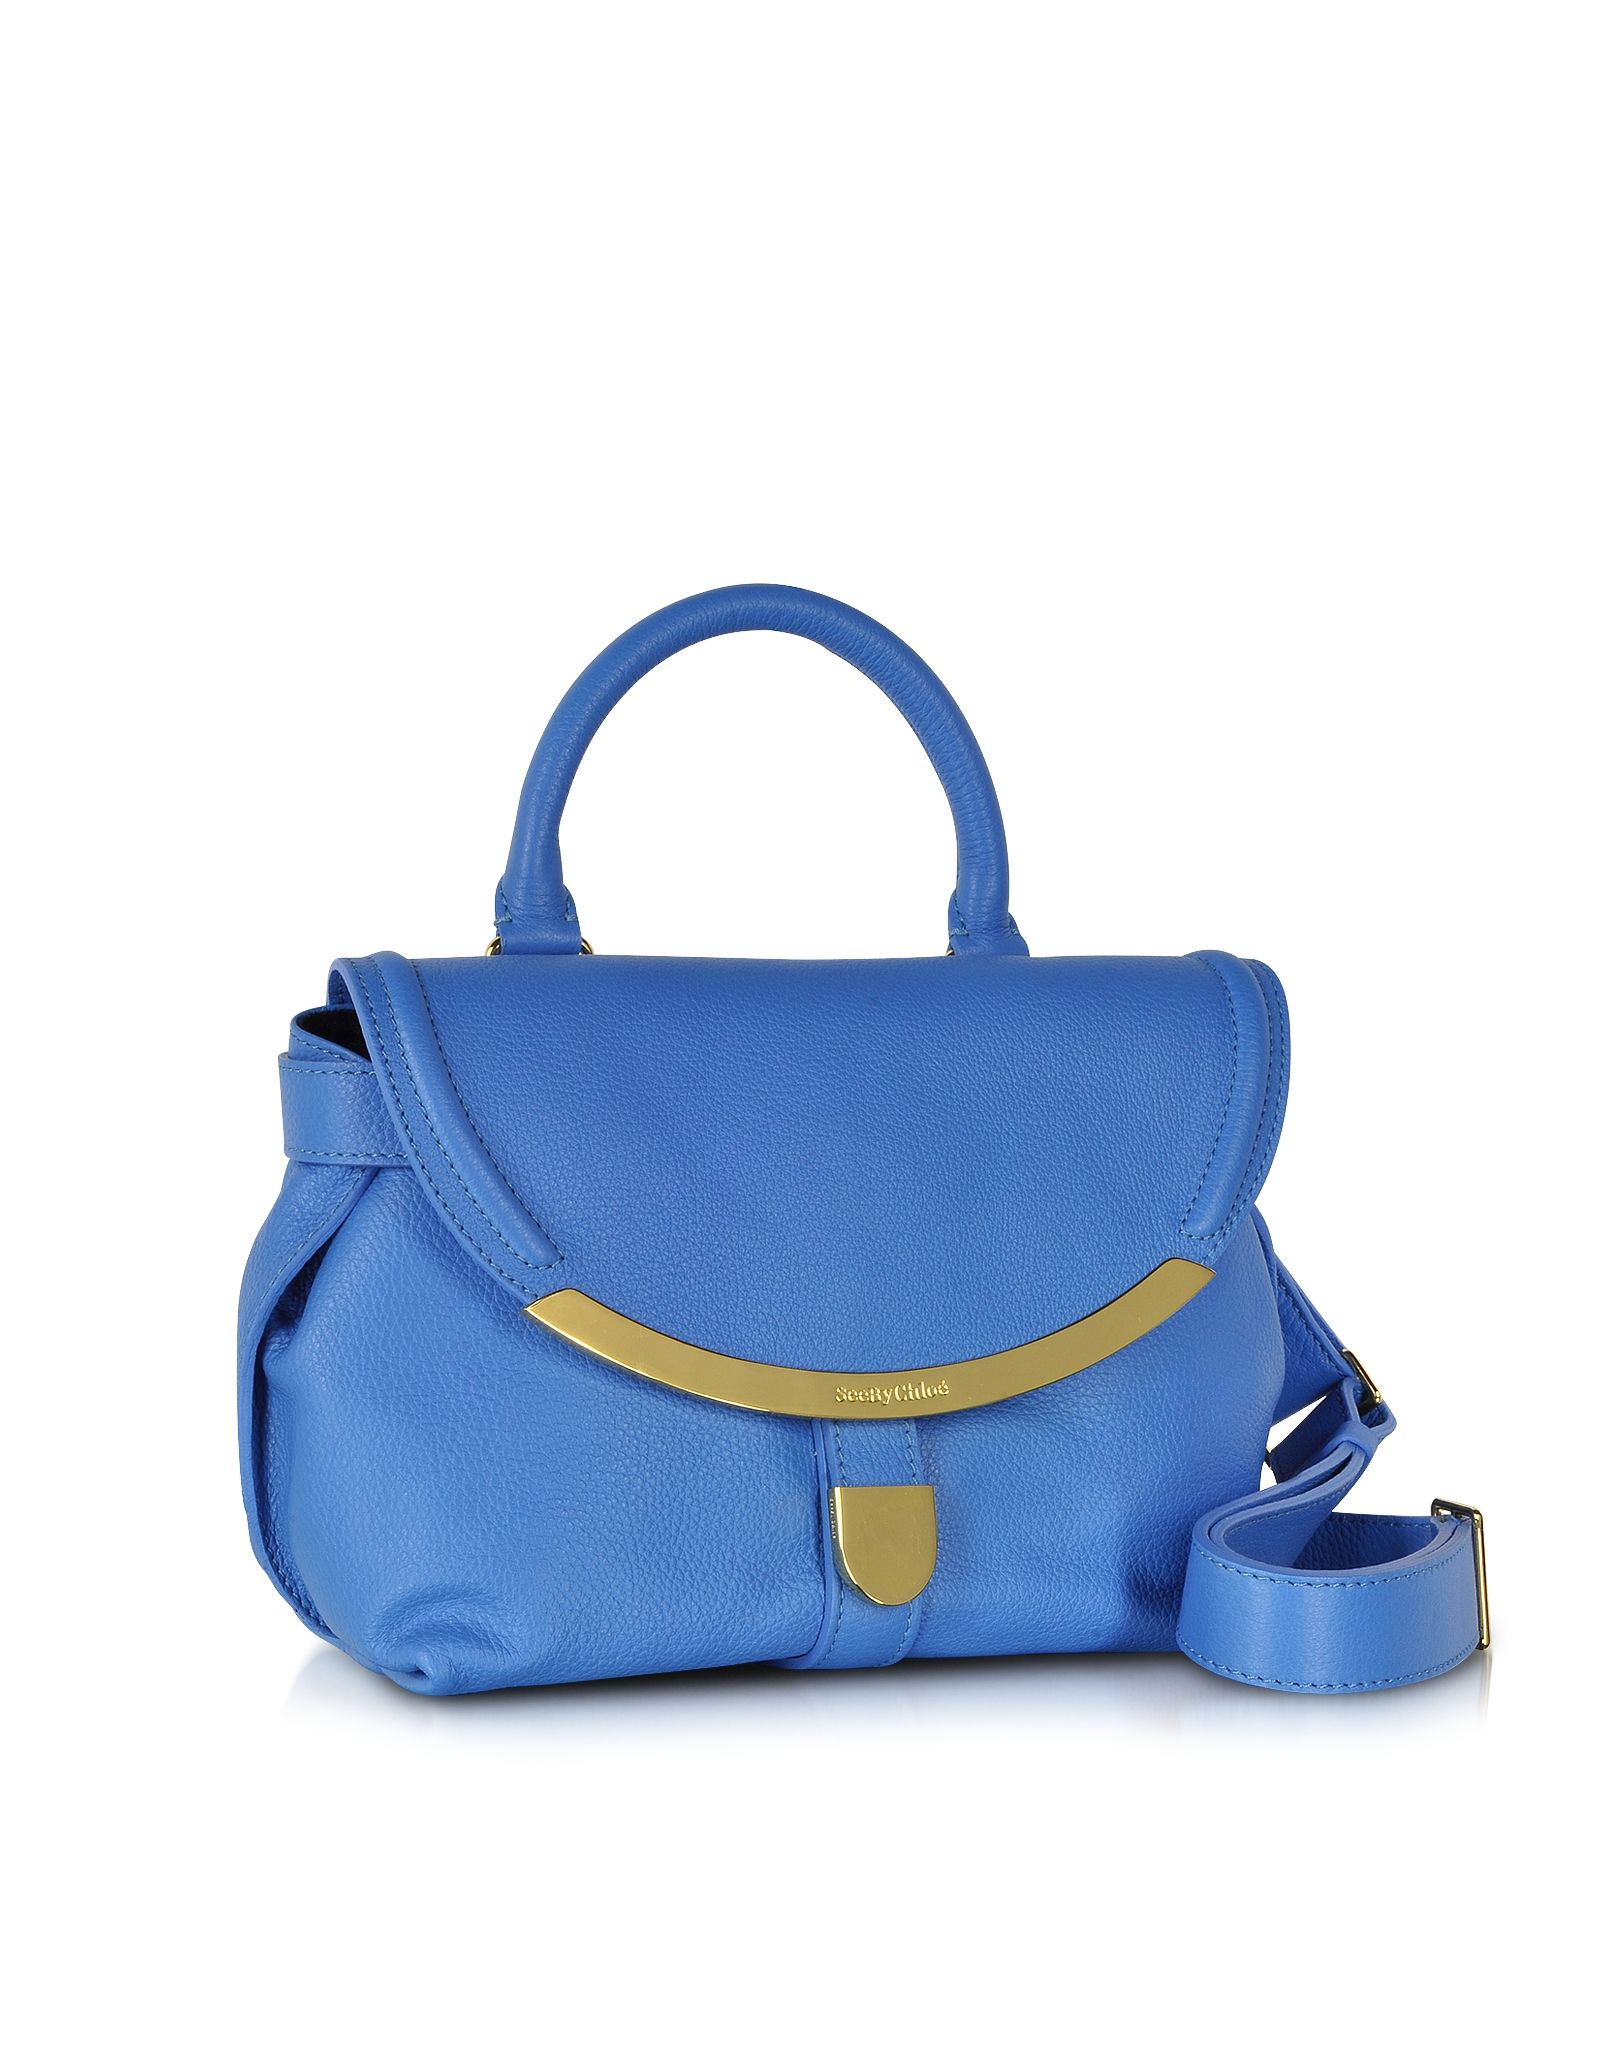 Lizzie Small Satchel Bag See by Chloé Blue California su FORZIERI